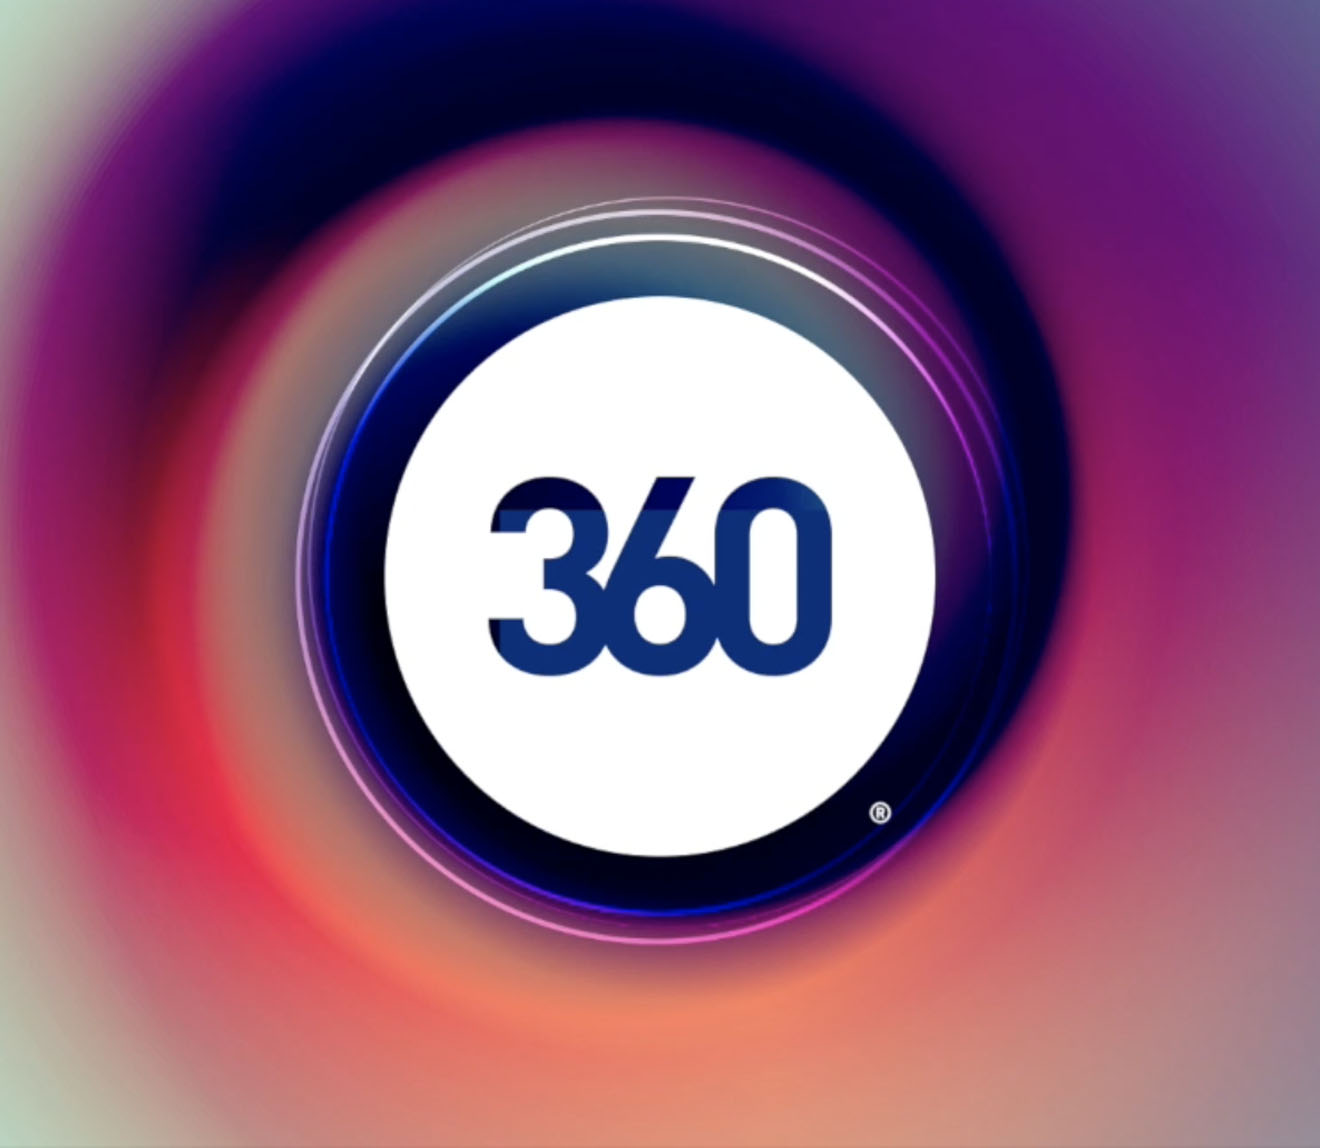 360 Live Media logo over a colorful background